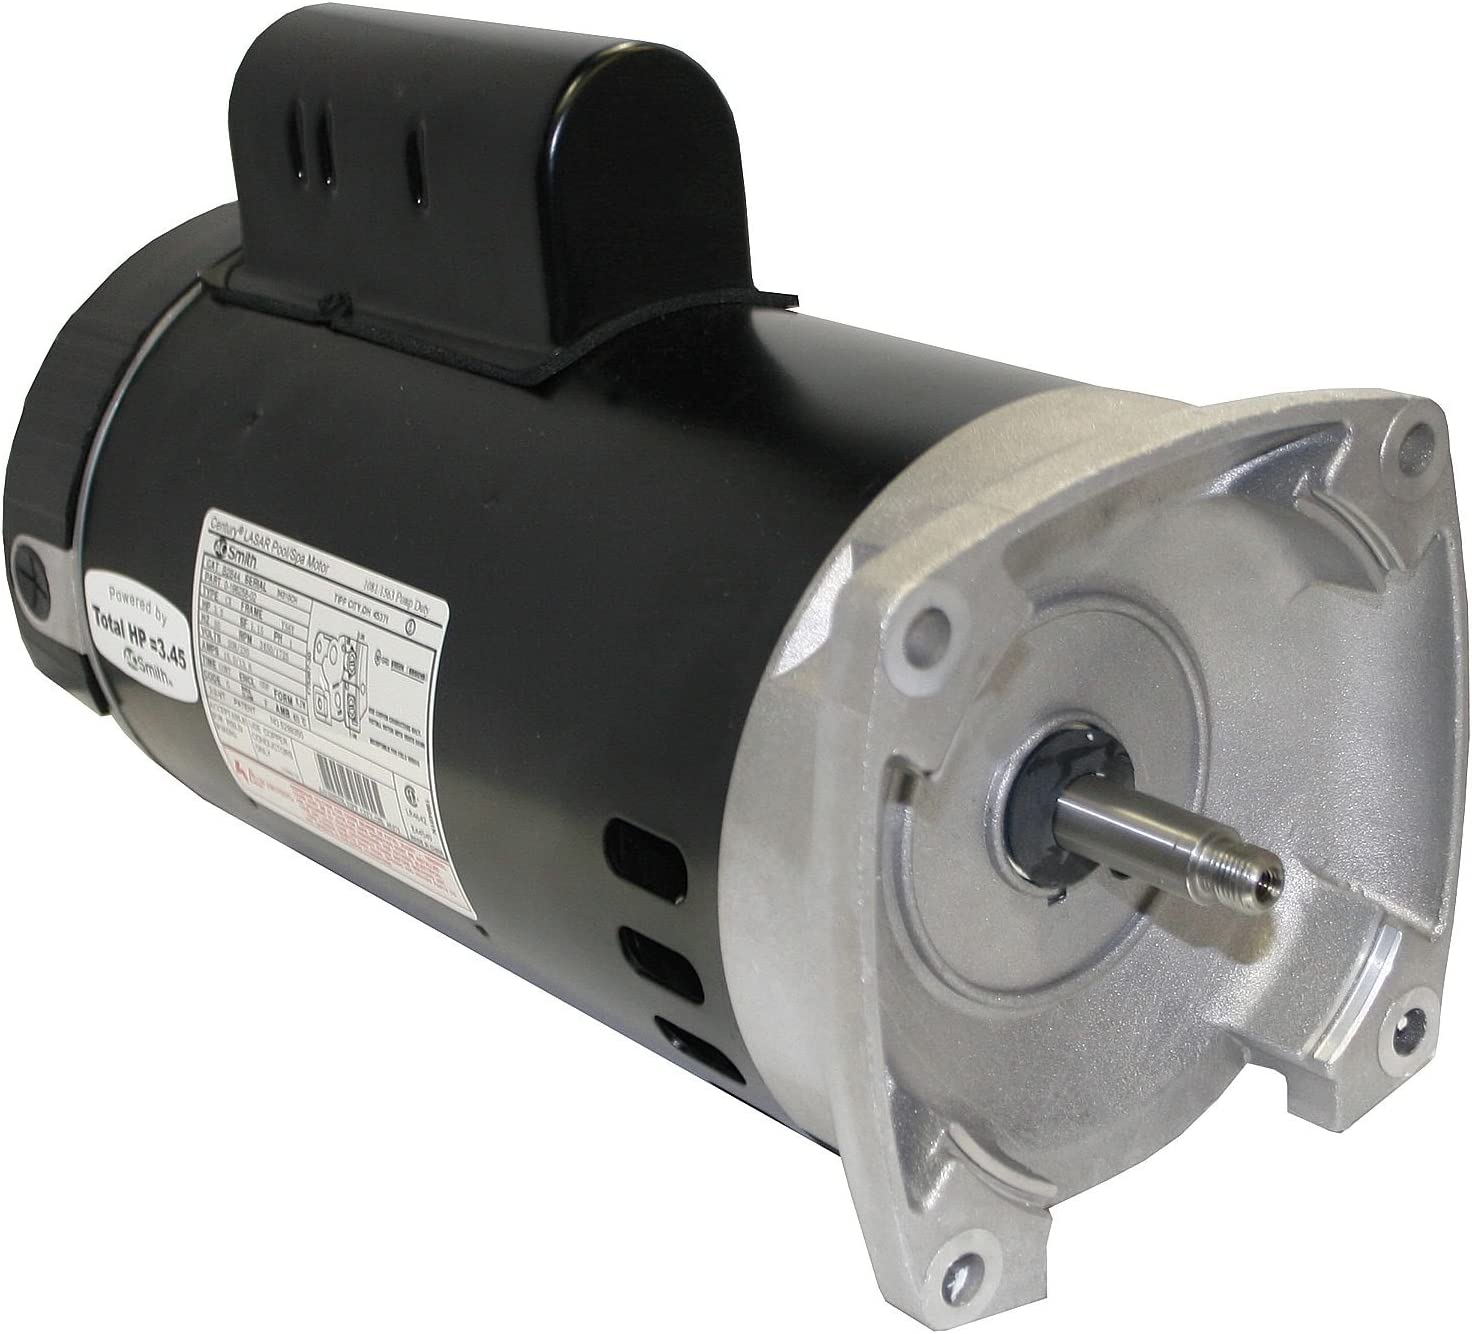 Century 3/4 HP Pool and Spa Pump Motor, Permanent Split Capacitor, 3450 Nameplate RPM, 115/208-230 Voltage, B2661